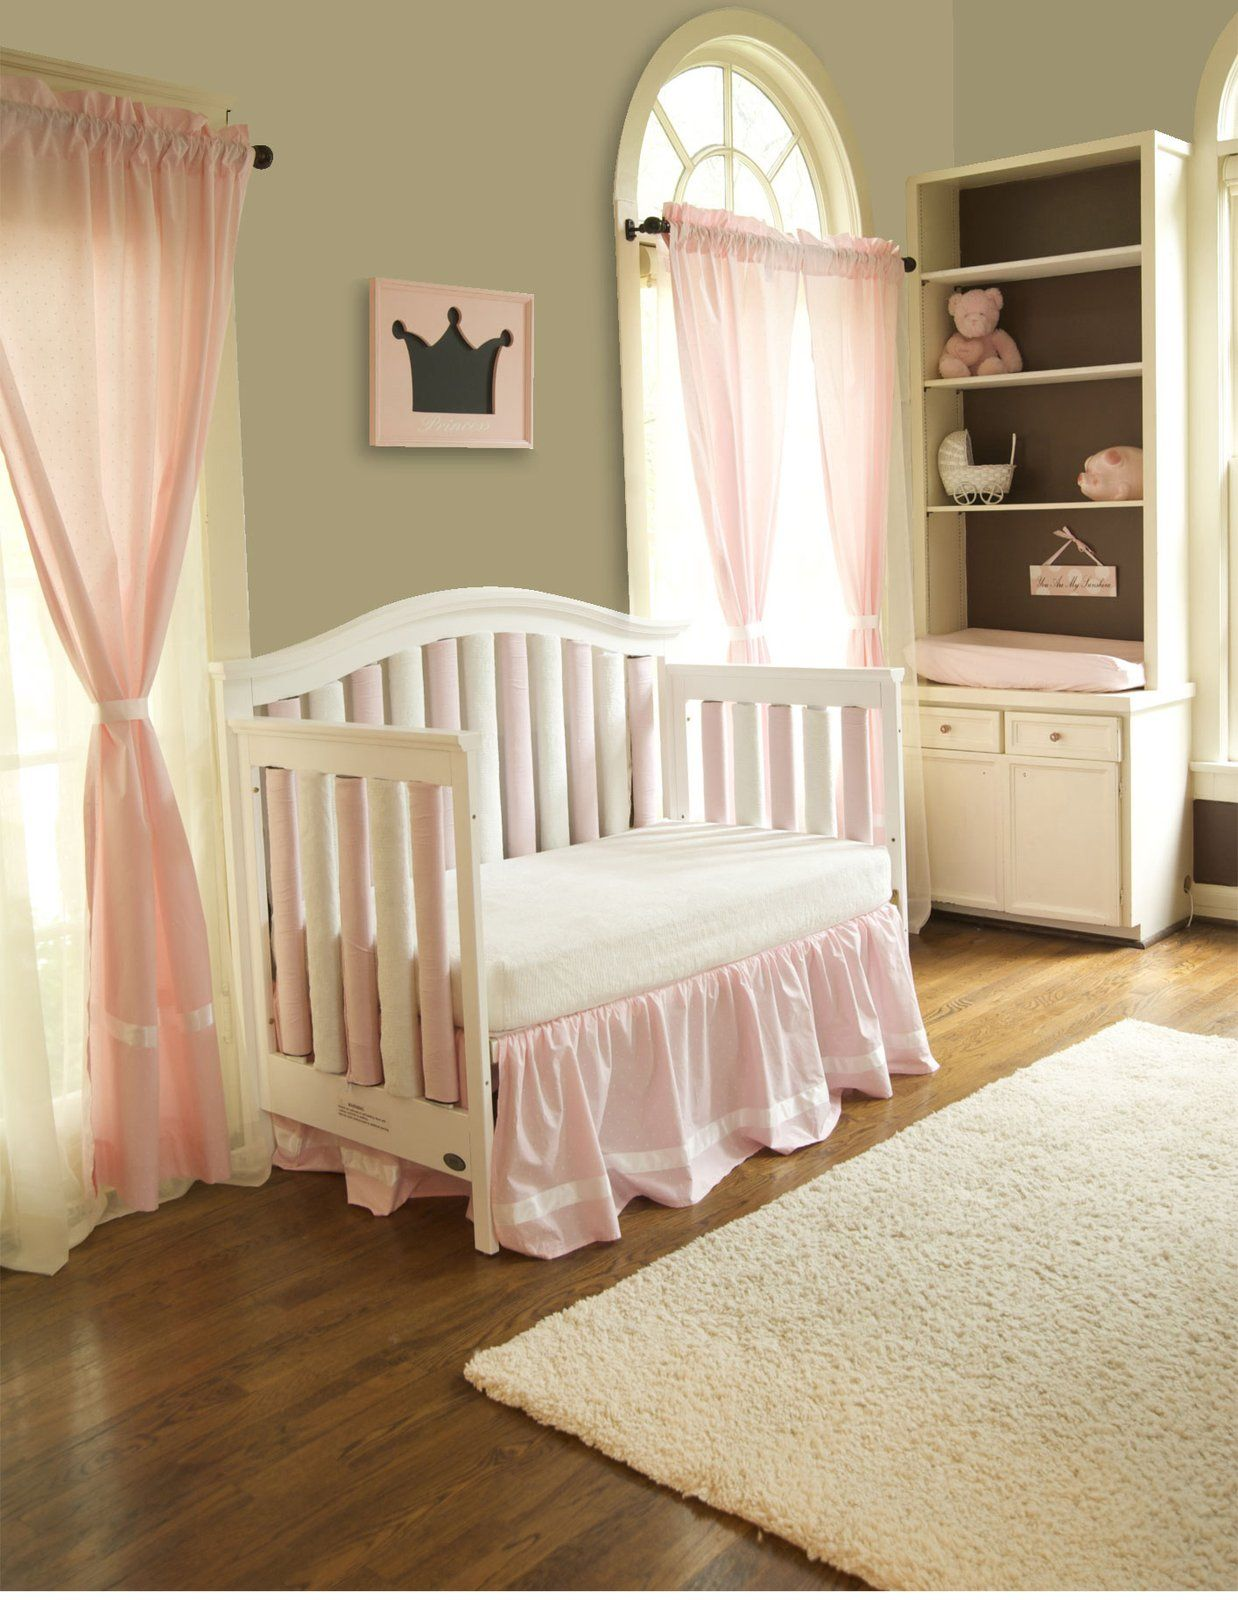 House furniture $$ How can i spend money on Go Mama Go Wonder Bumpers -Pink & Chocolate (38 Pack) ~ Furniture News